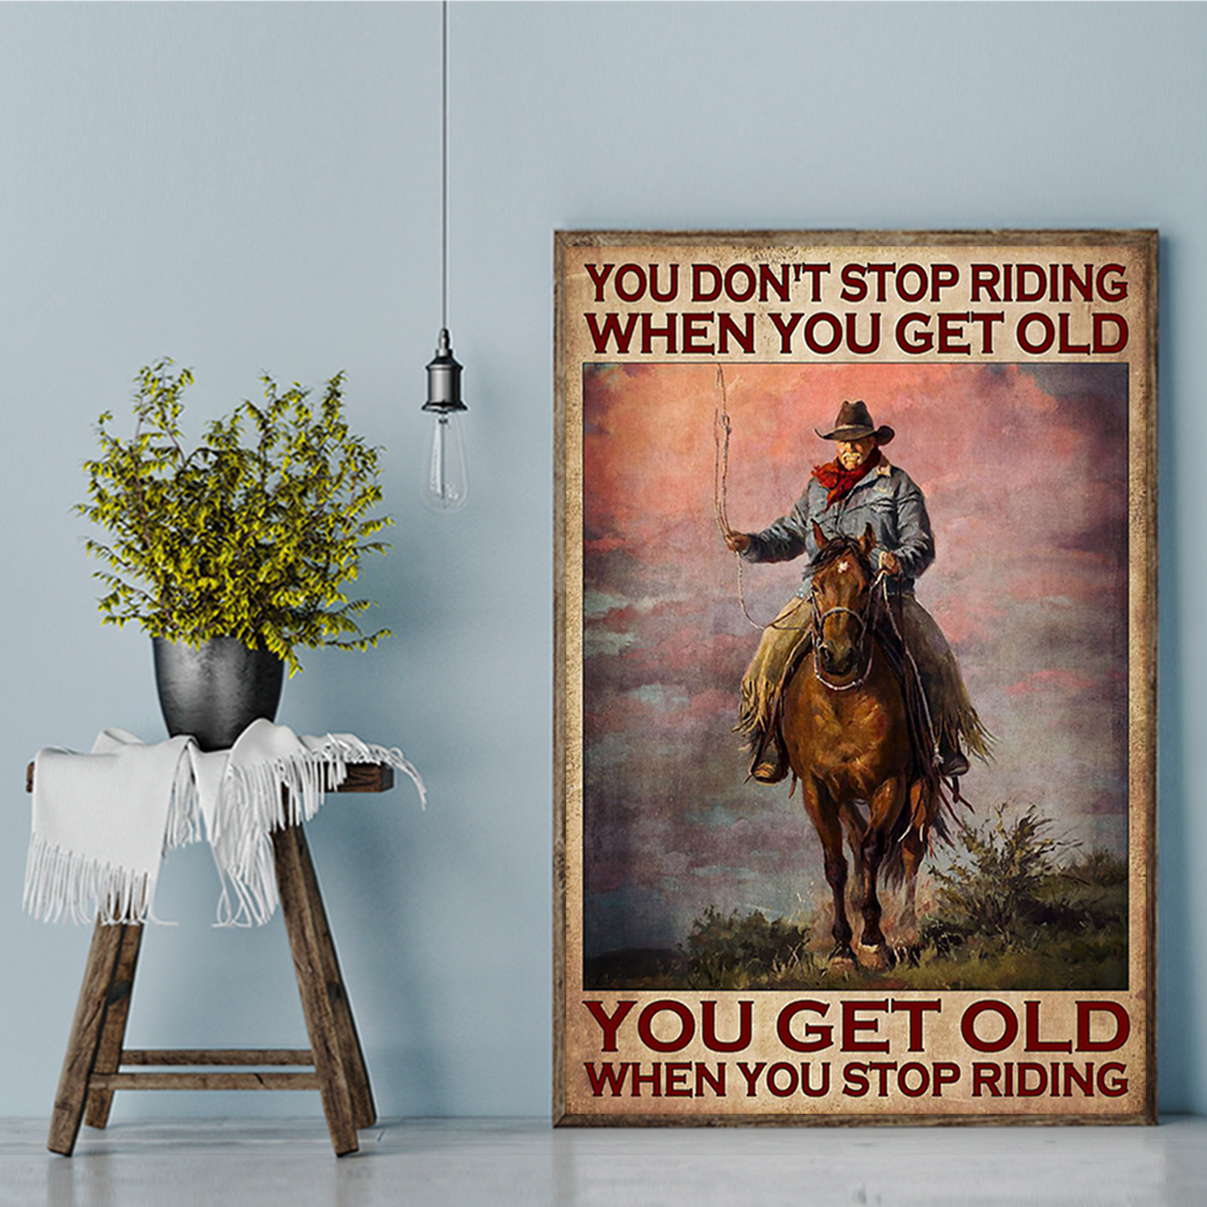 Old man cowboy you don't stop riding when you get old poster A2